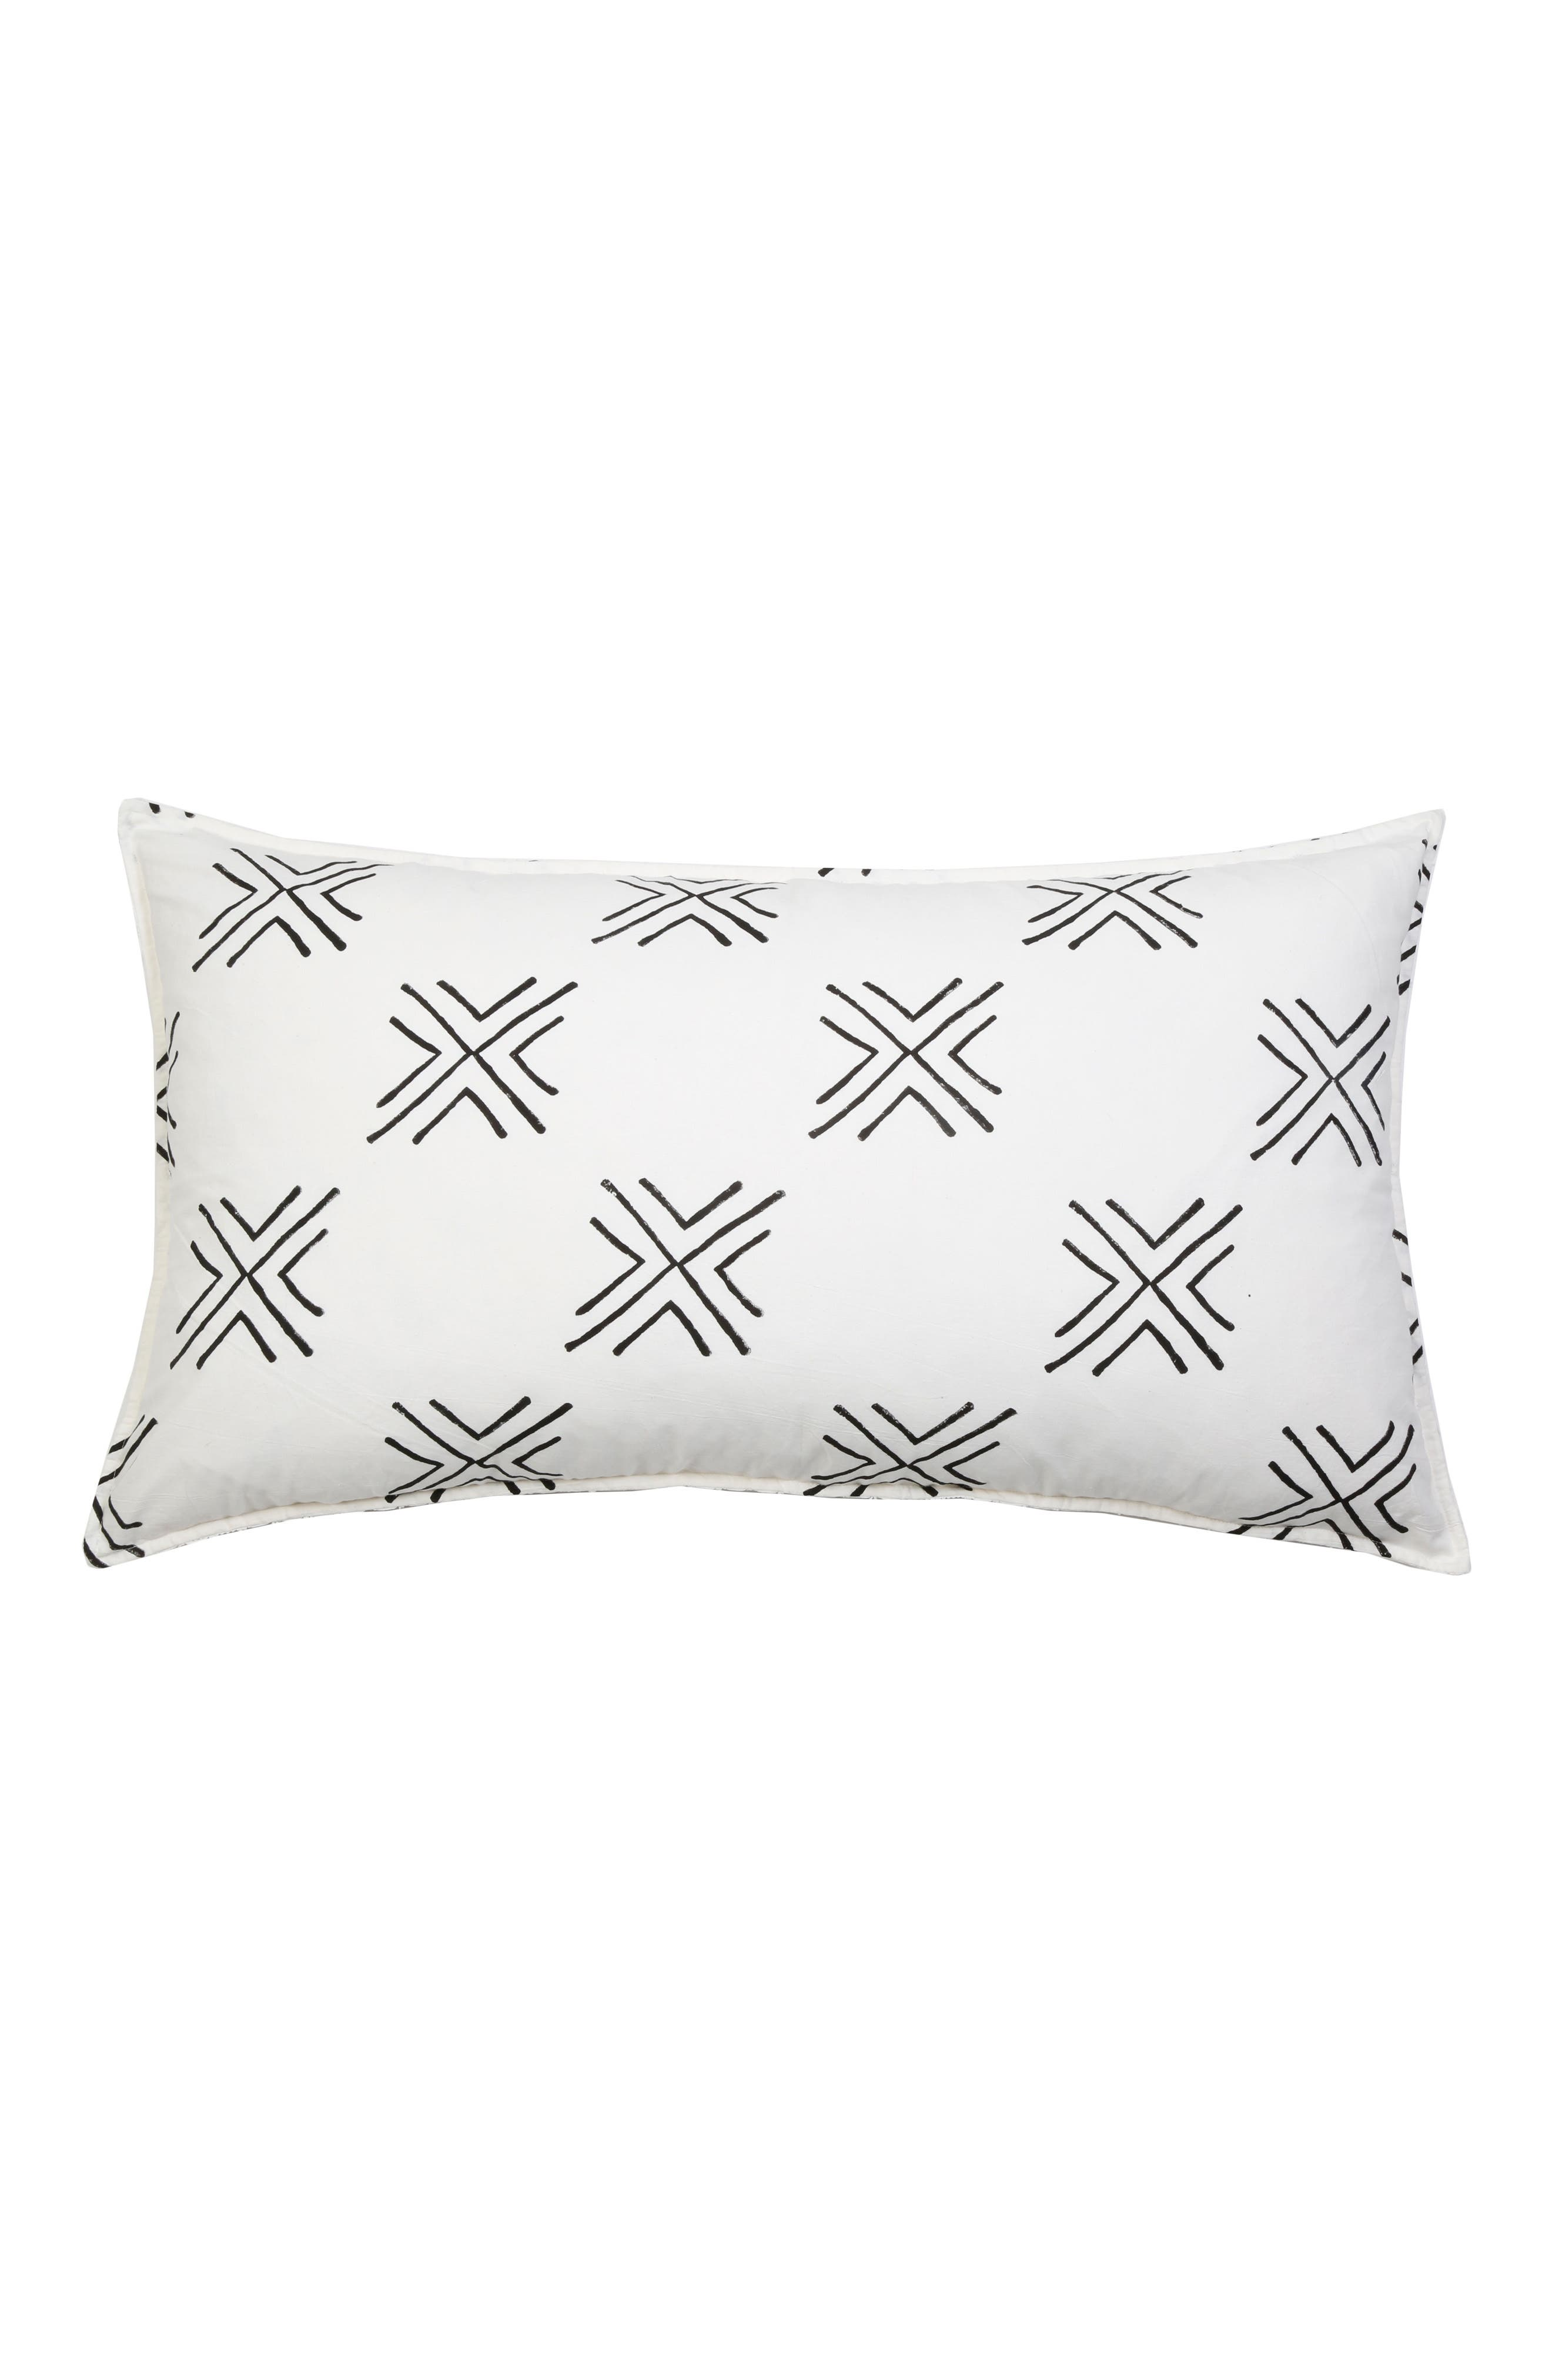 Arrow Accent Pillow,                         Main,                         color,